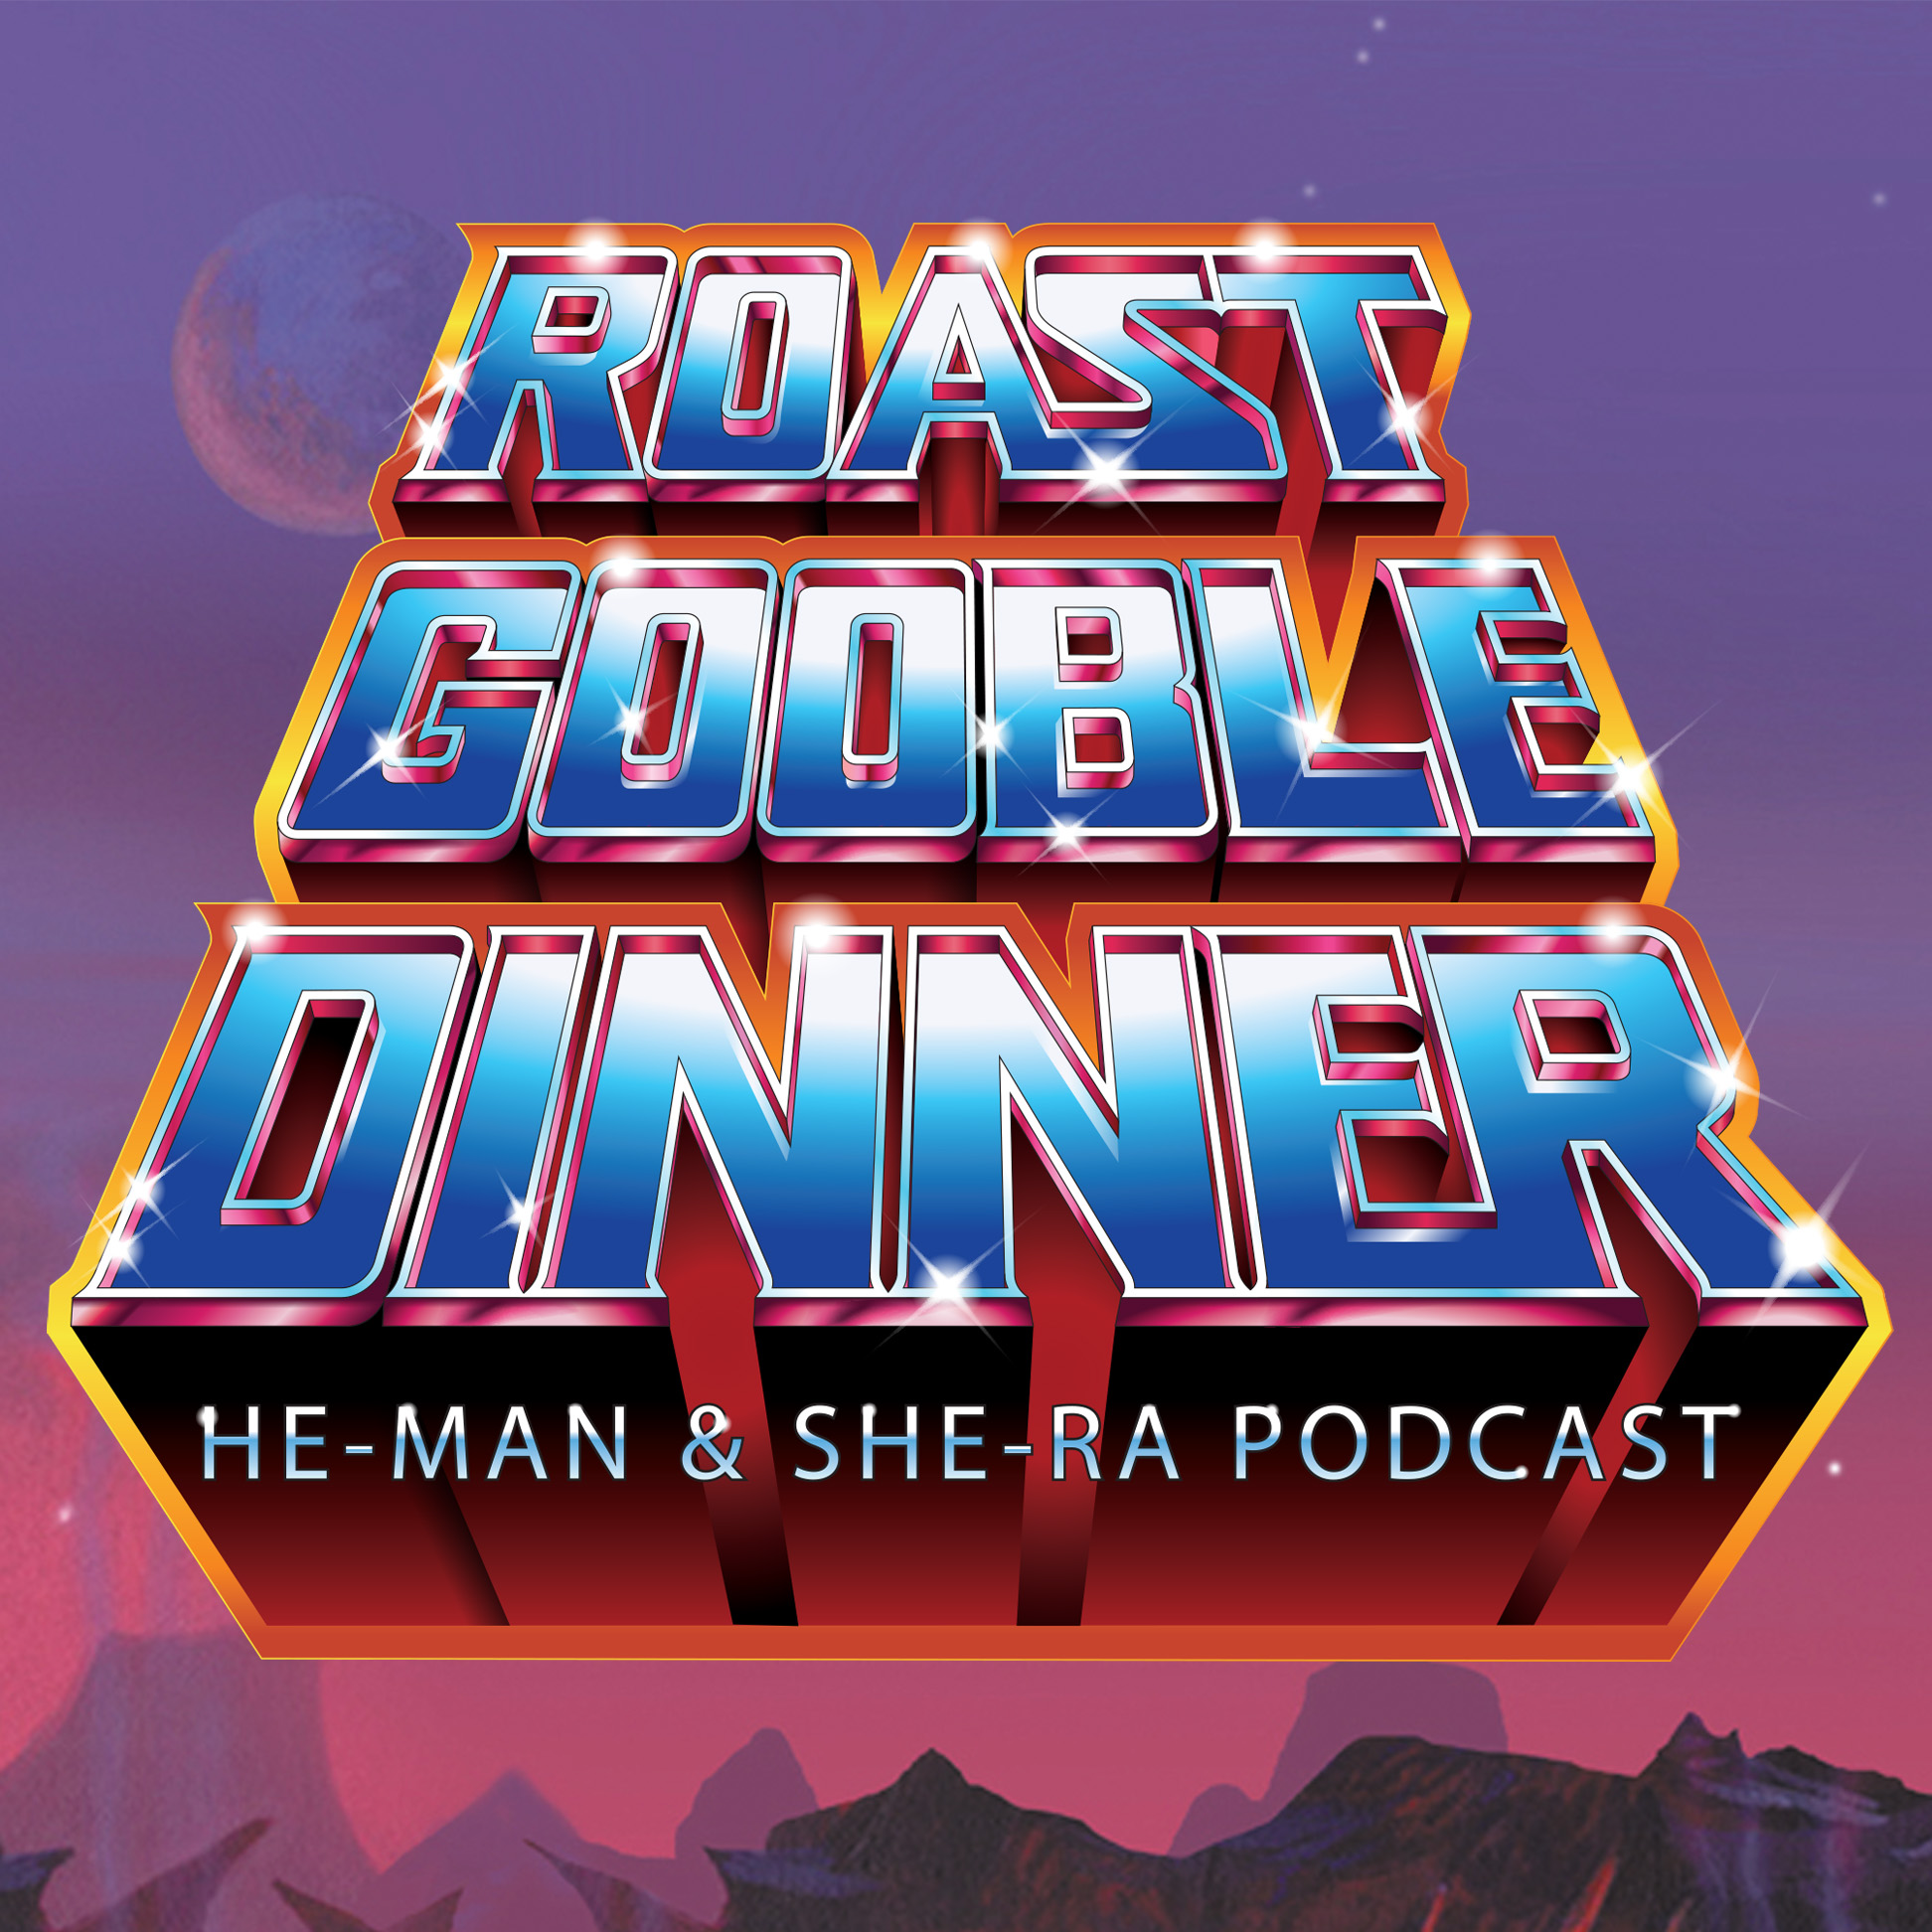 Episode 131 - He-Man.org's Roast Gooble Dinner